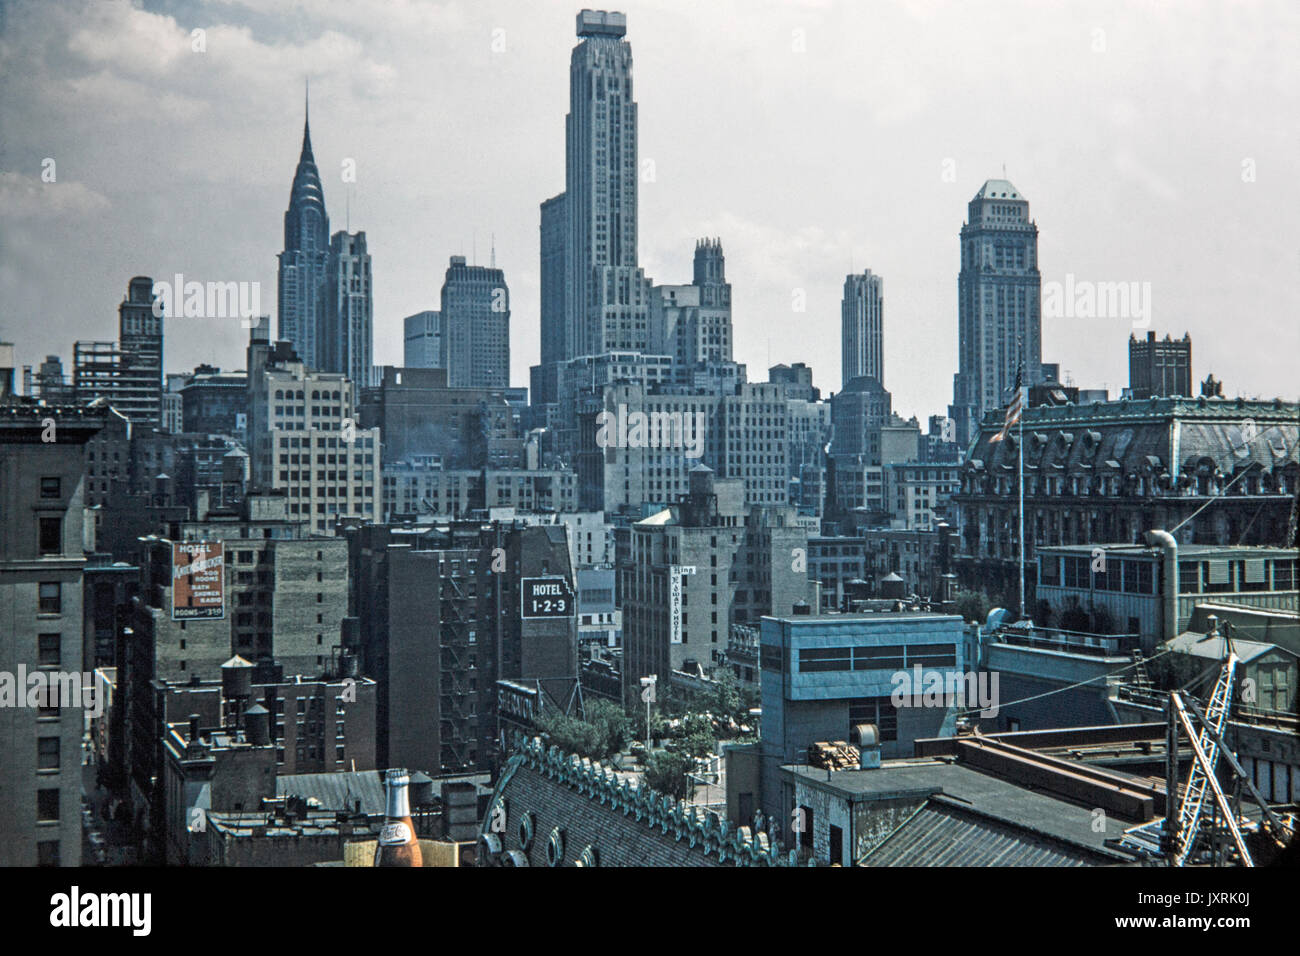 View looking across buildings in New York City in 1956. Signs can be seen for Hotel Knickerbocker, King Edward Hotel, Stock Photo